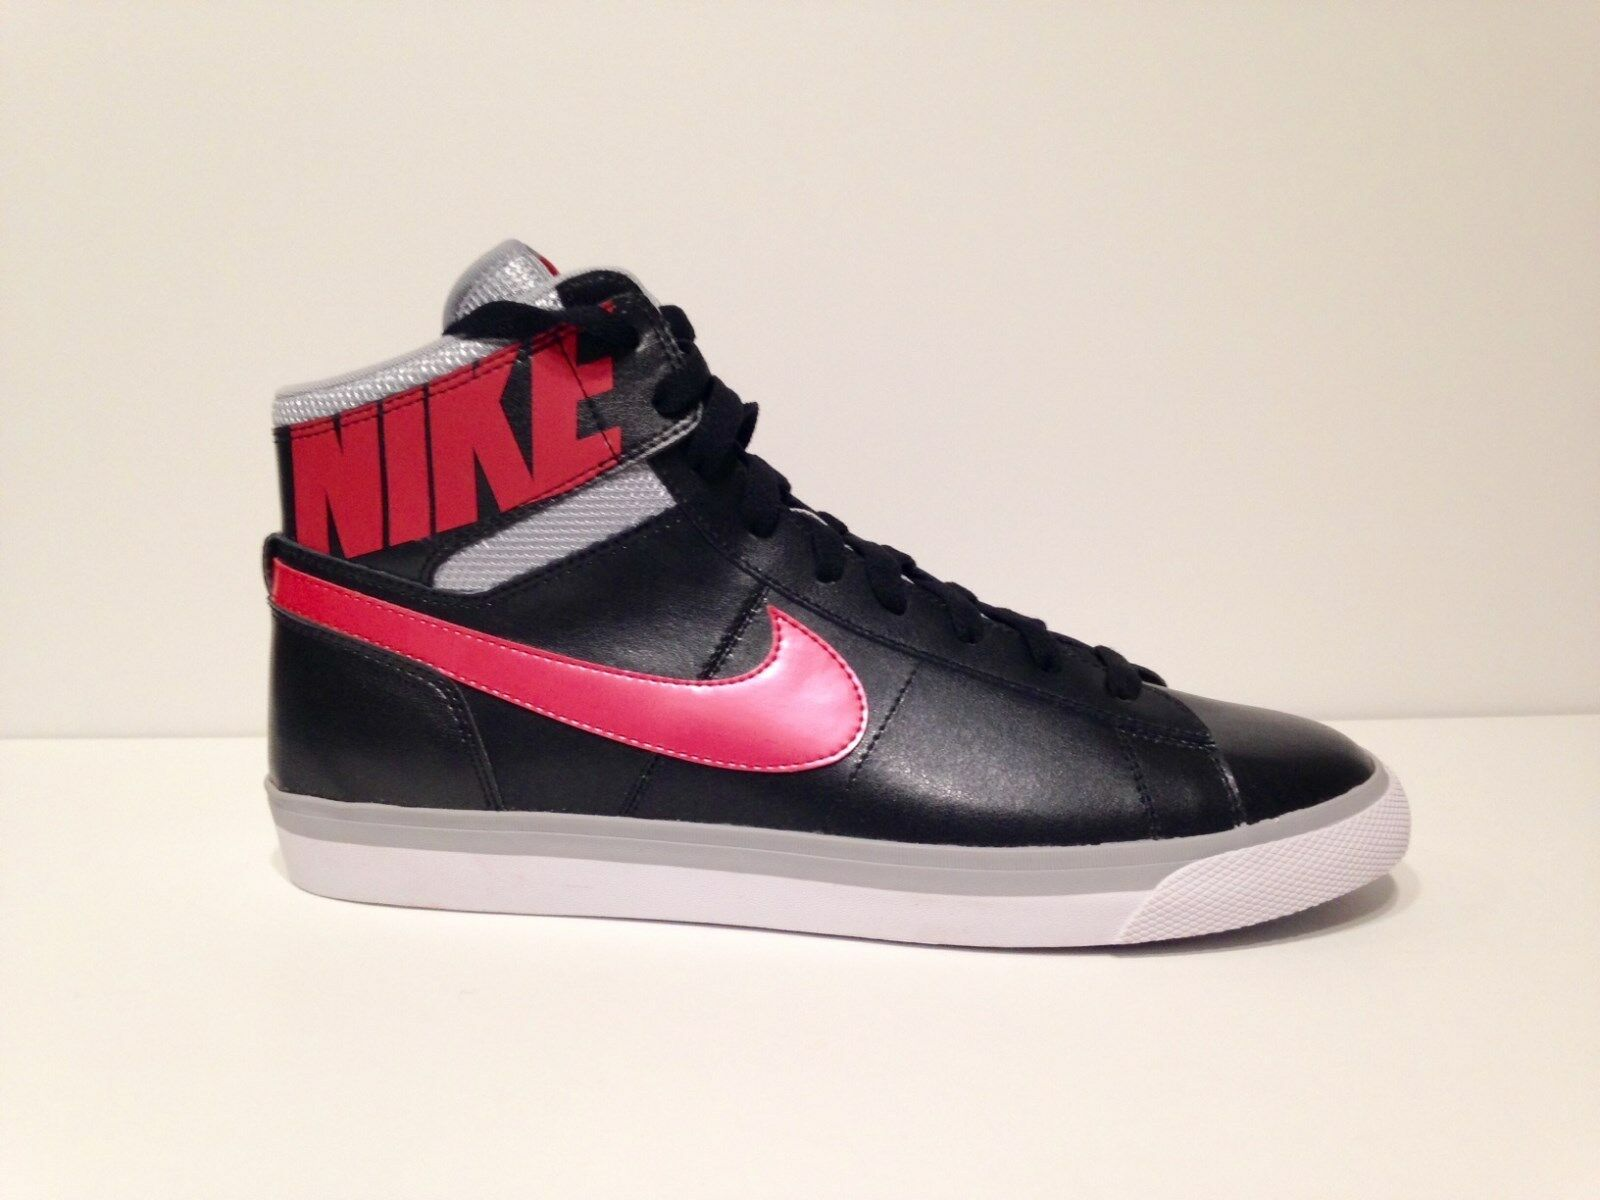 New NIKE WMNS MATCH SUPREME HI Leather Black/Pink shoes Brand discount